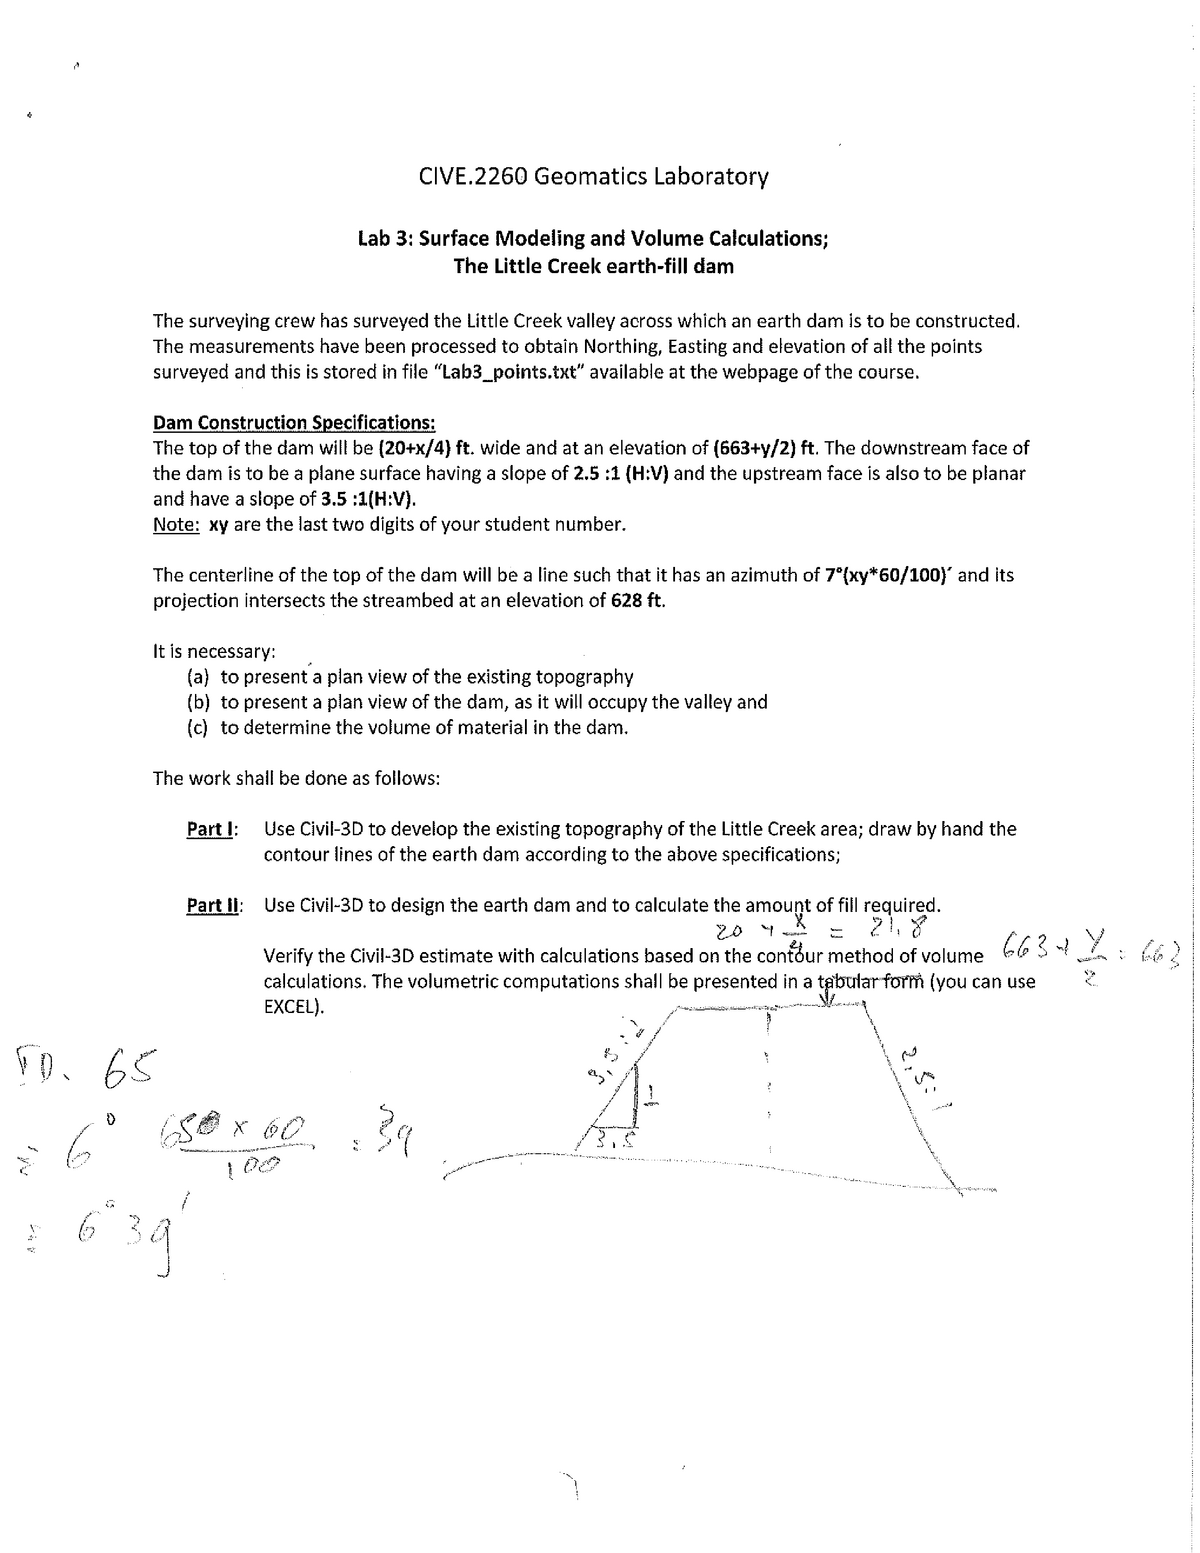 Geomatics Lab 3 - Surface Modeling and Volume Calculations - The